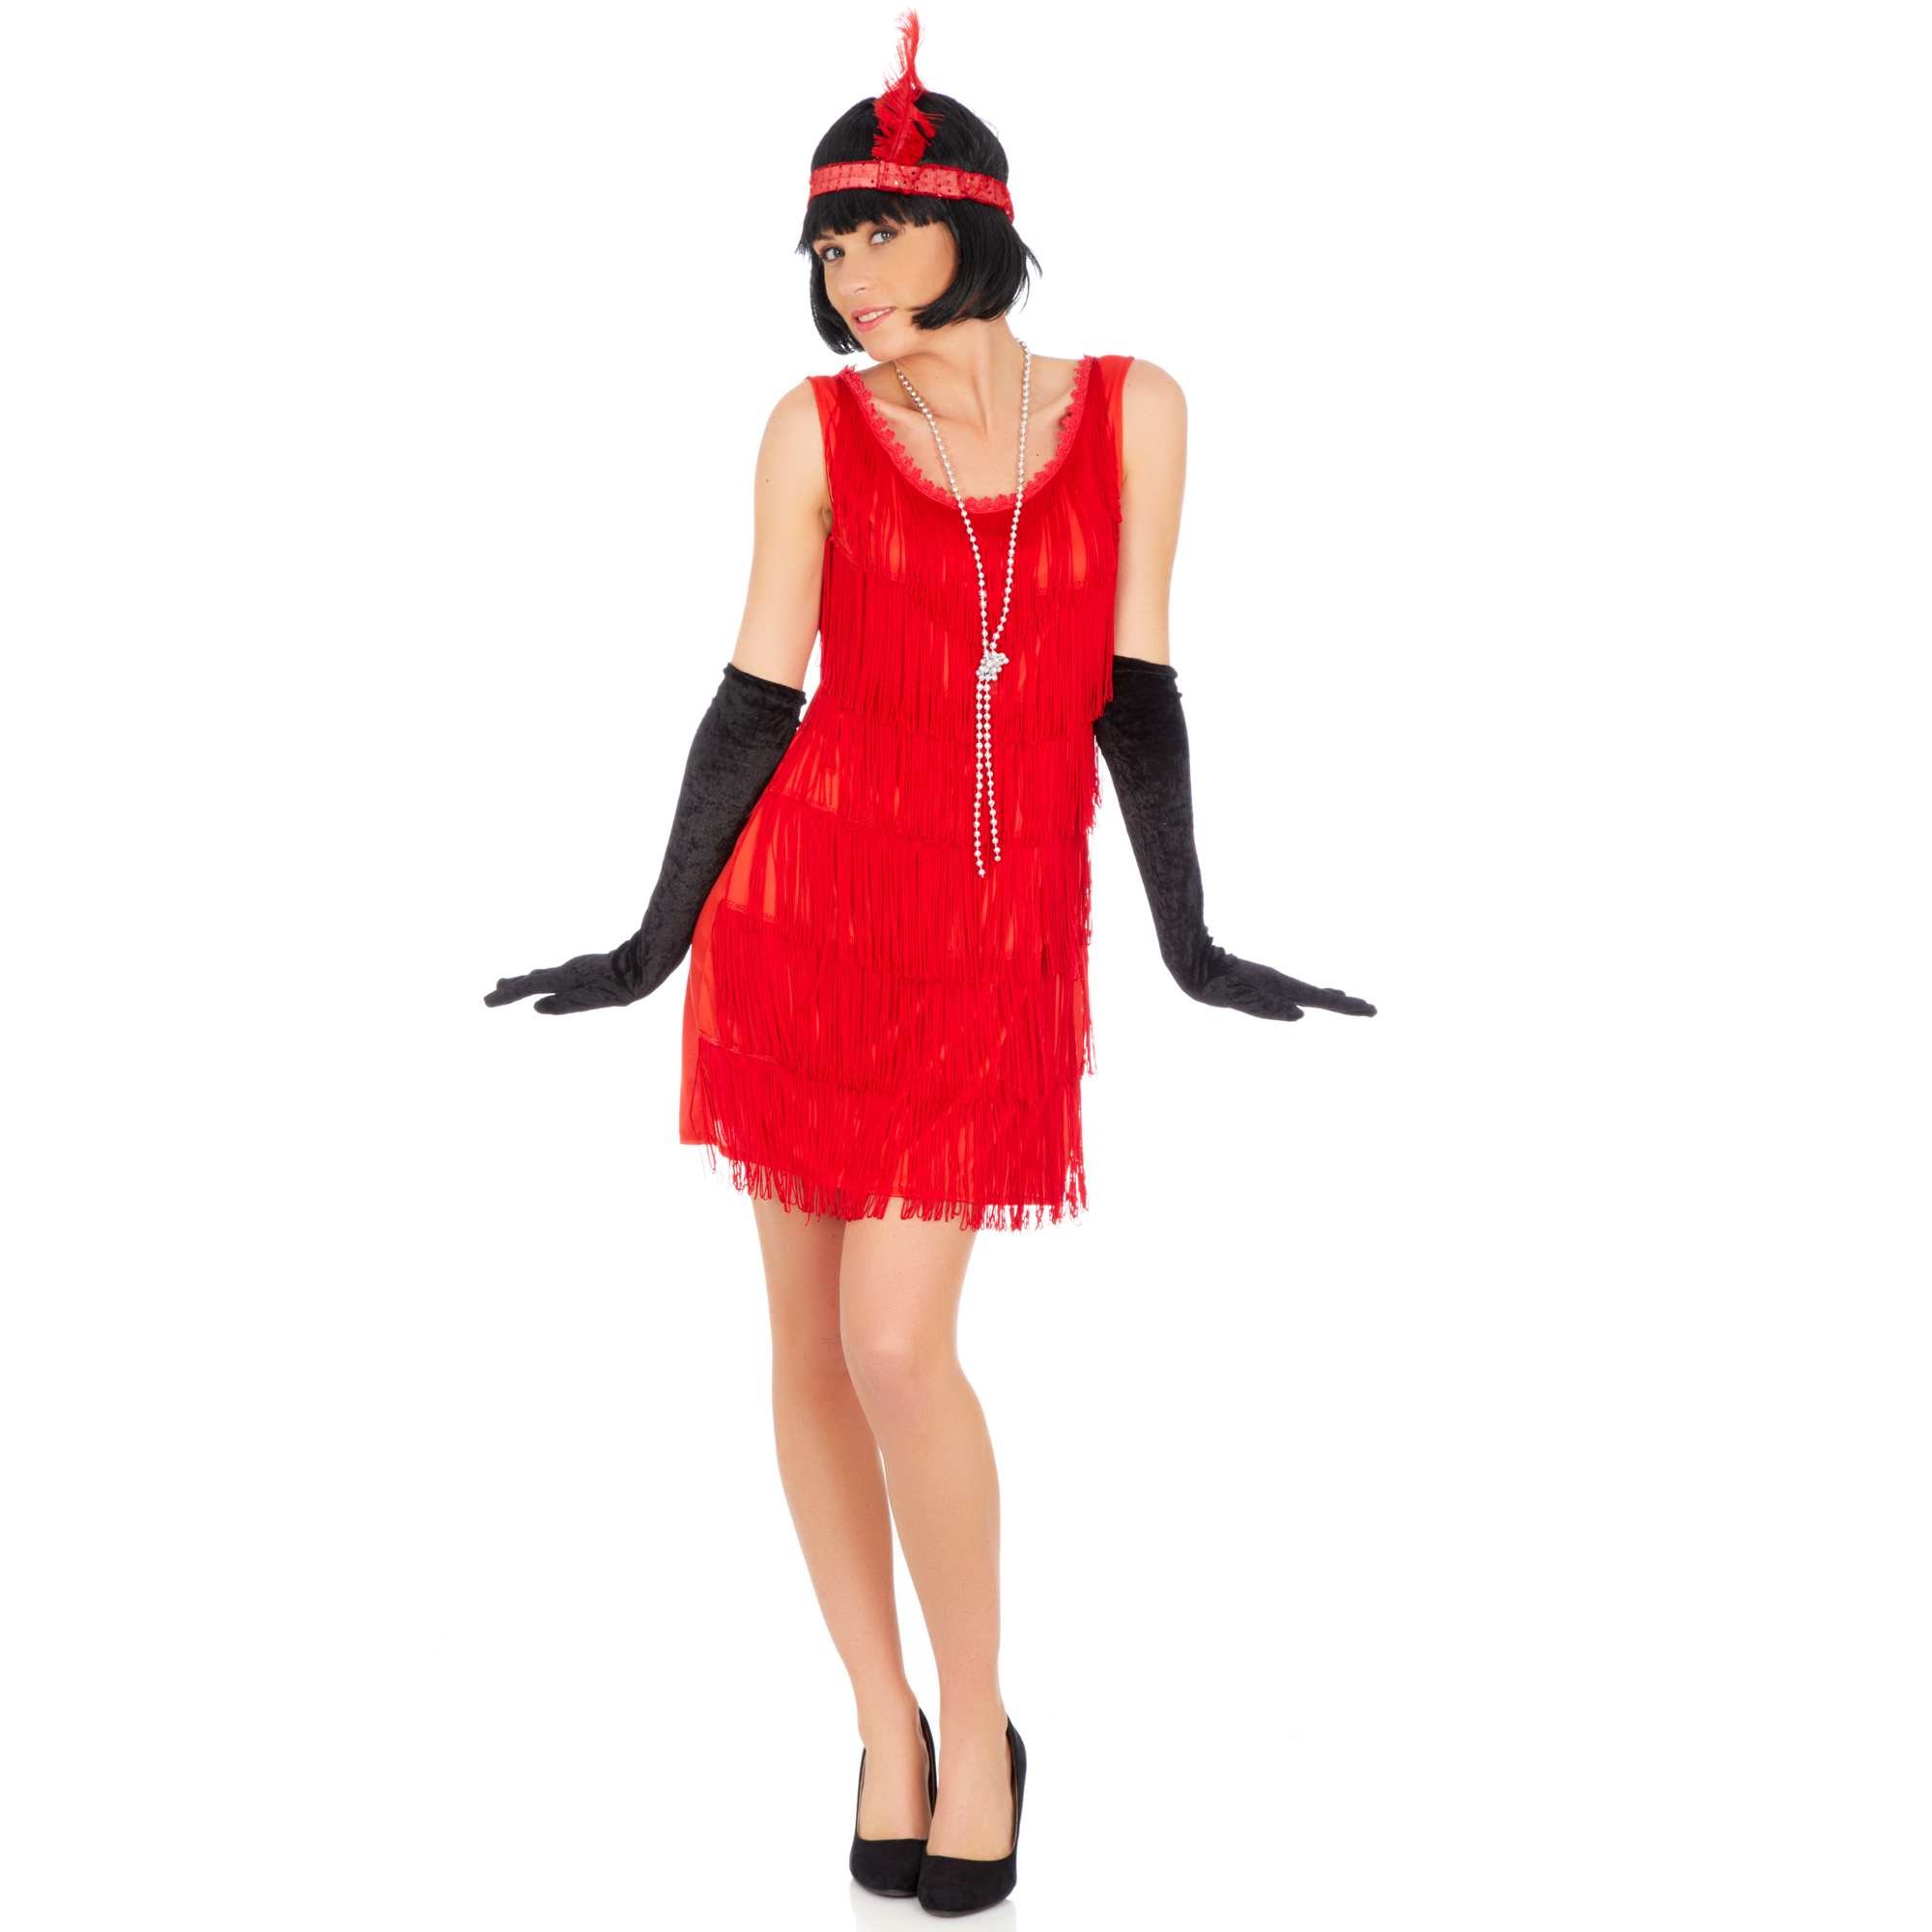 Costume charleston femme kiabi 18 00 for Costume pas cher